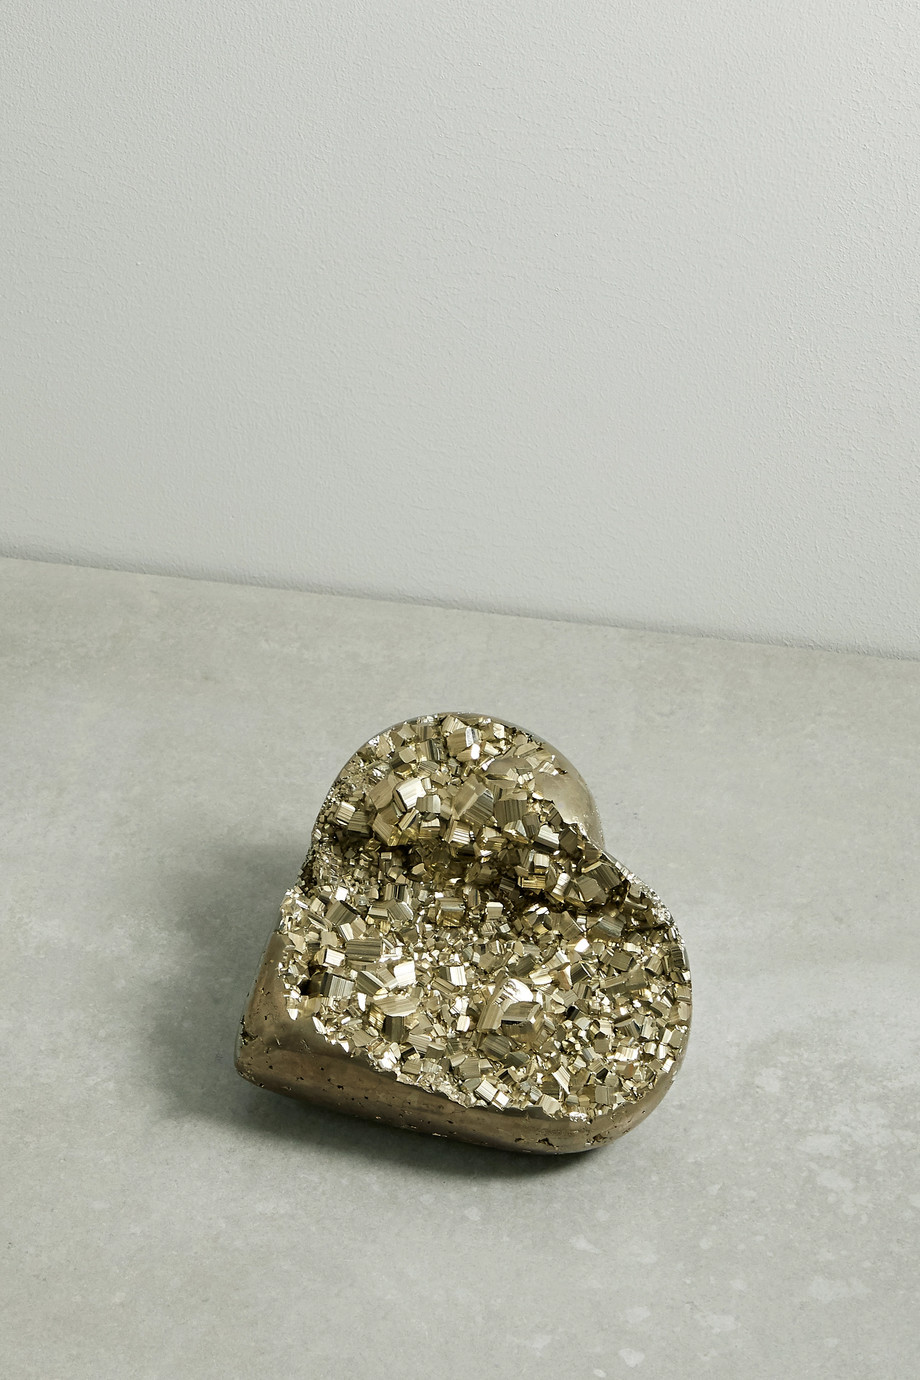 KIMBERLY MCDONALD Heart pyrite geode